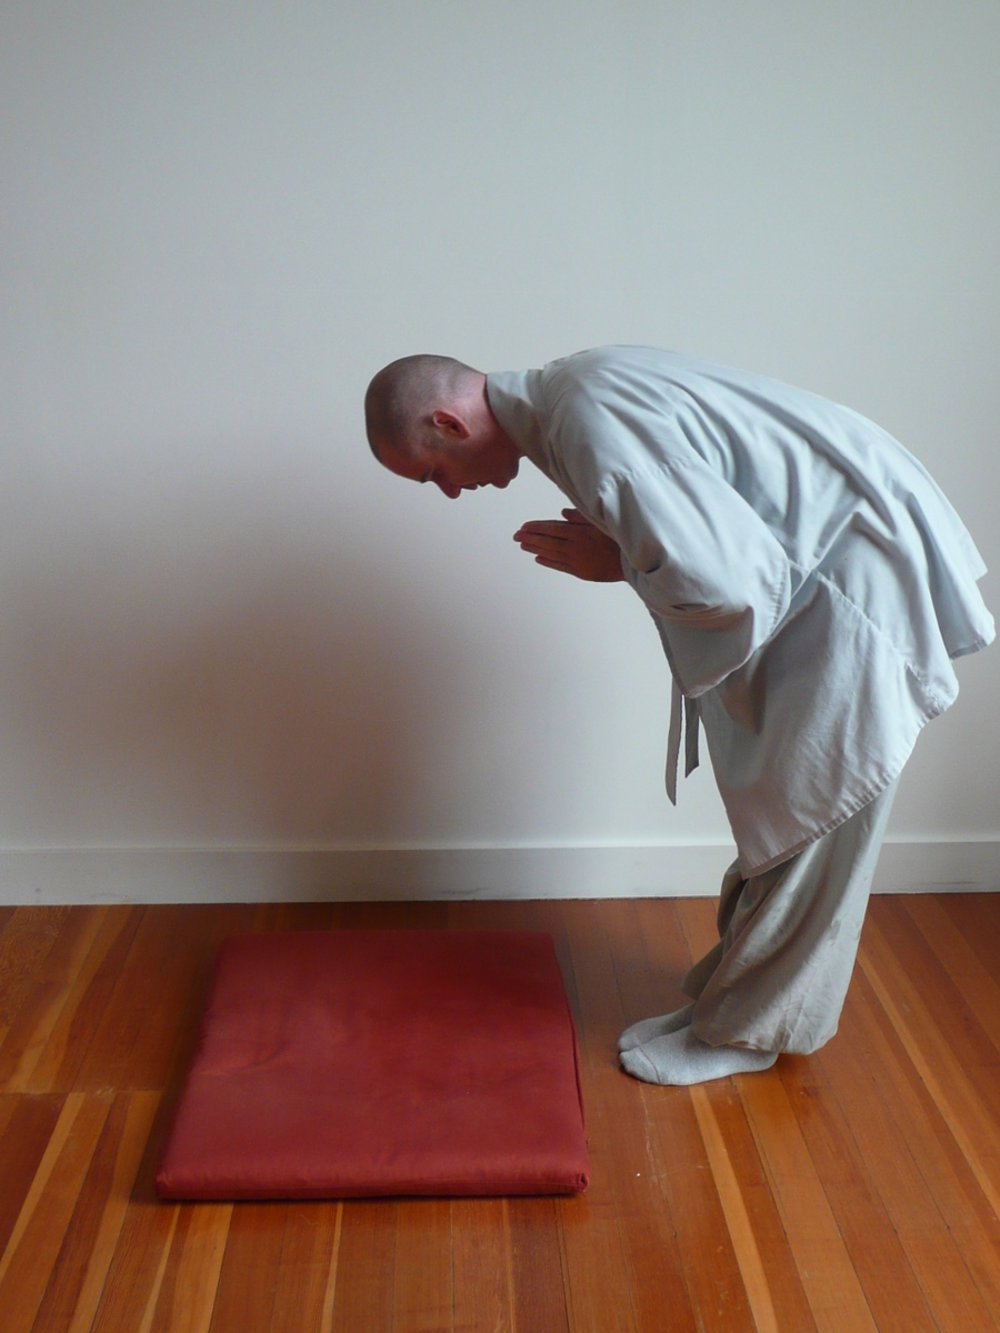 2. Bow fully from the hips, keeping your back straight so your chest is parallel to the floor. Your head should be bowed and your hands should remain close to your body. -